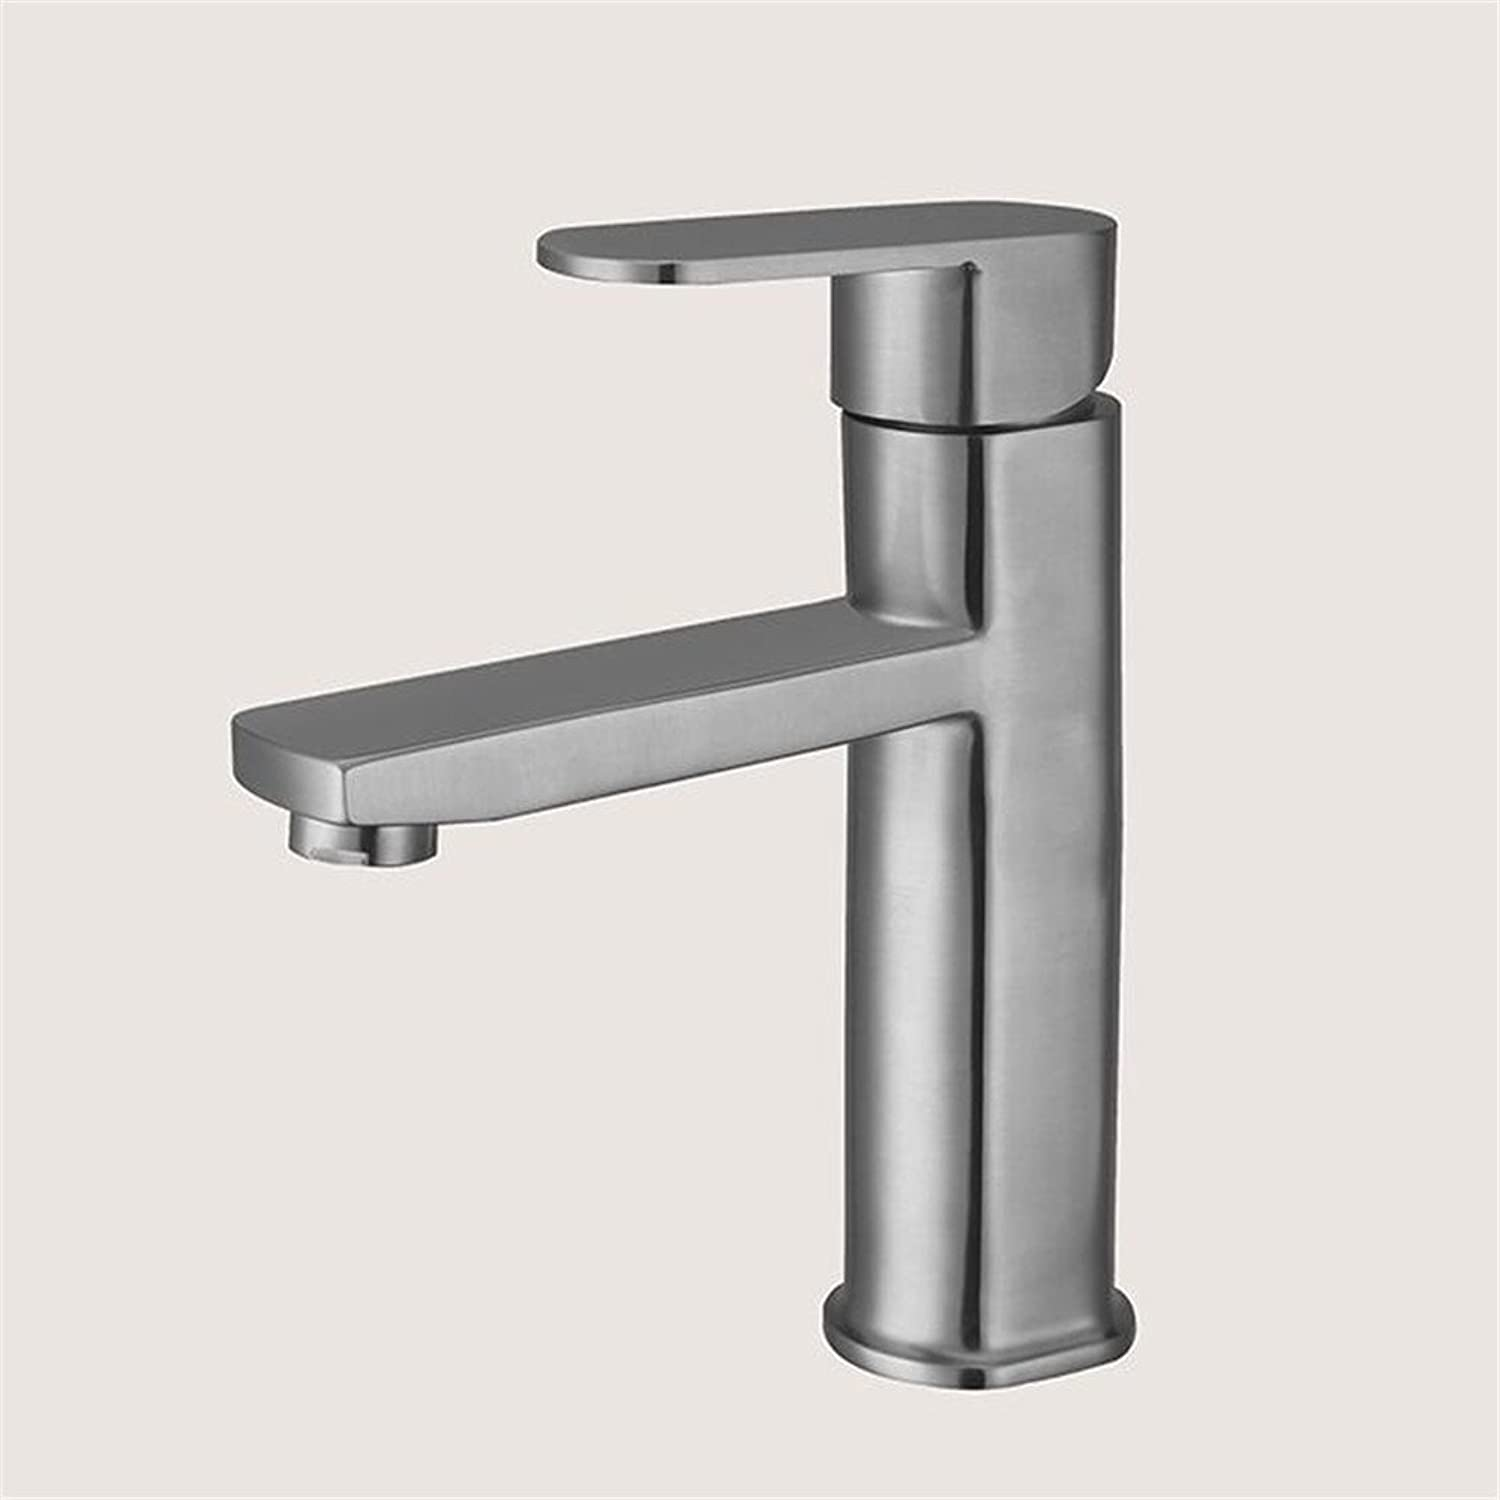 Hlluya Professional Sink Mixer Tap Kitchen Faucet Cold water faucet Bathroom Cabinet basin modern cold water faucet stainless steel Faucet